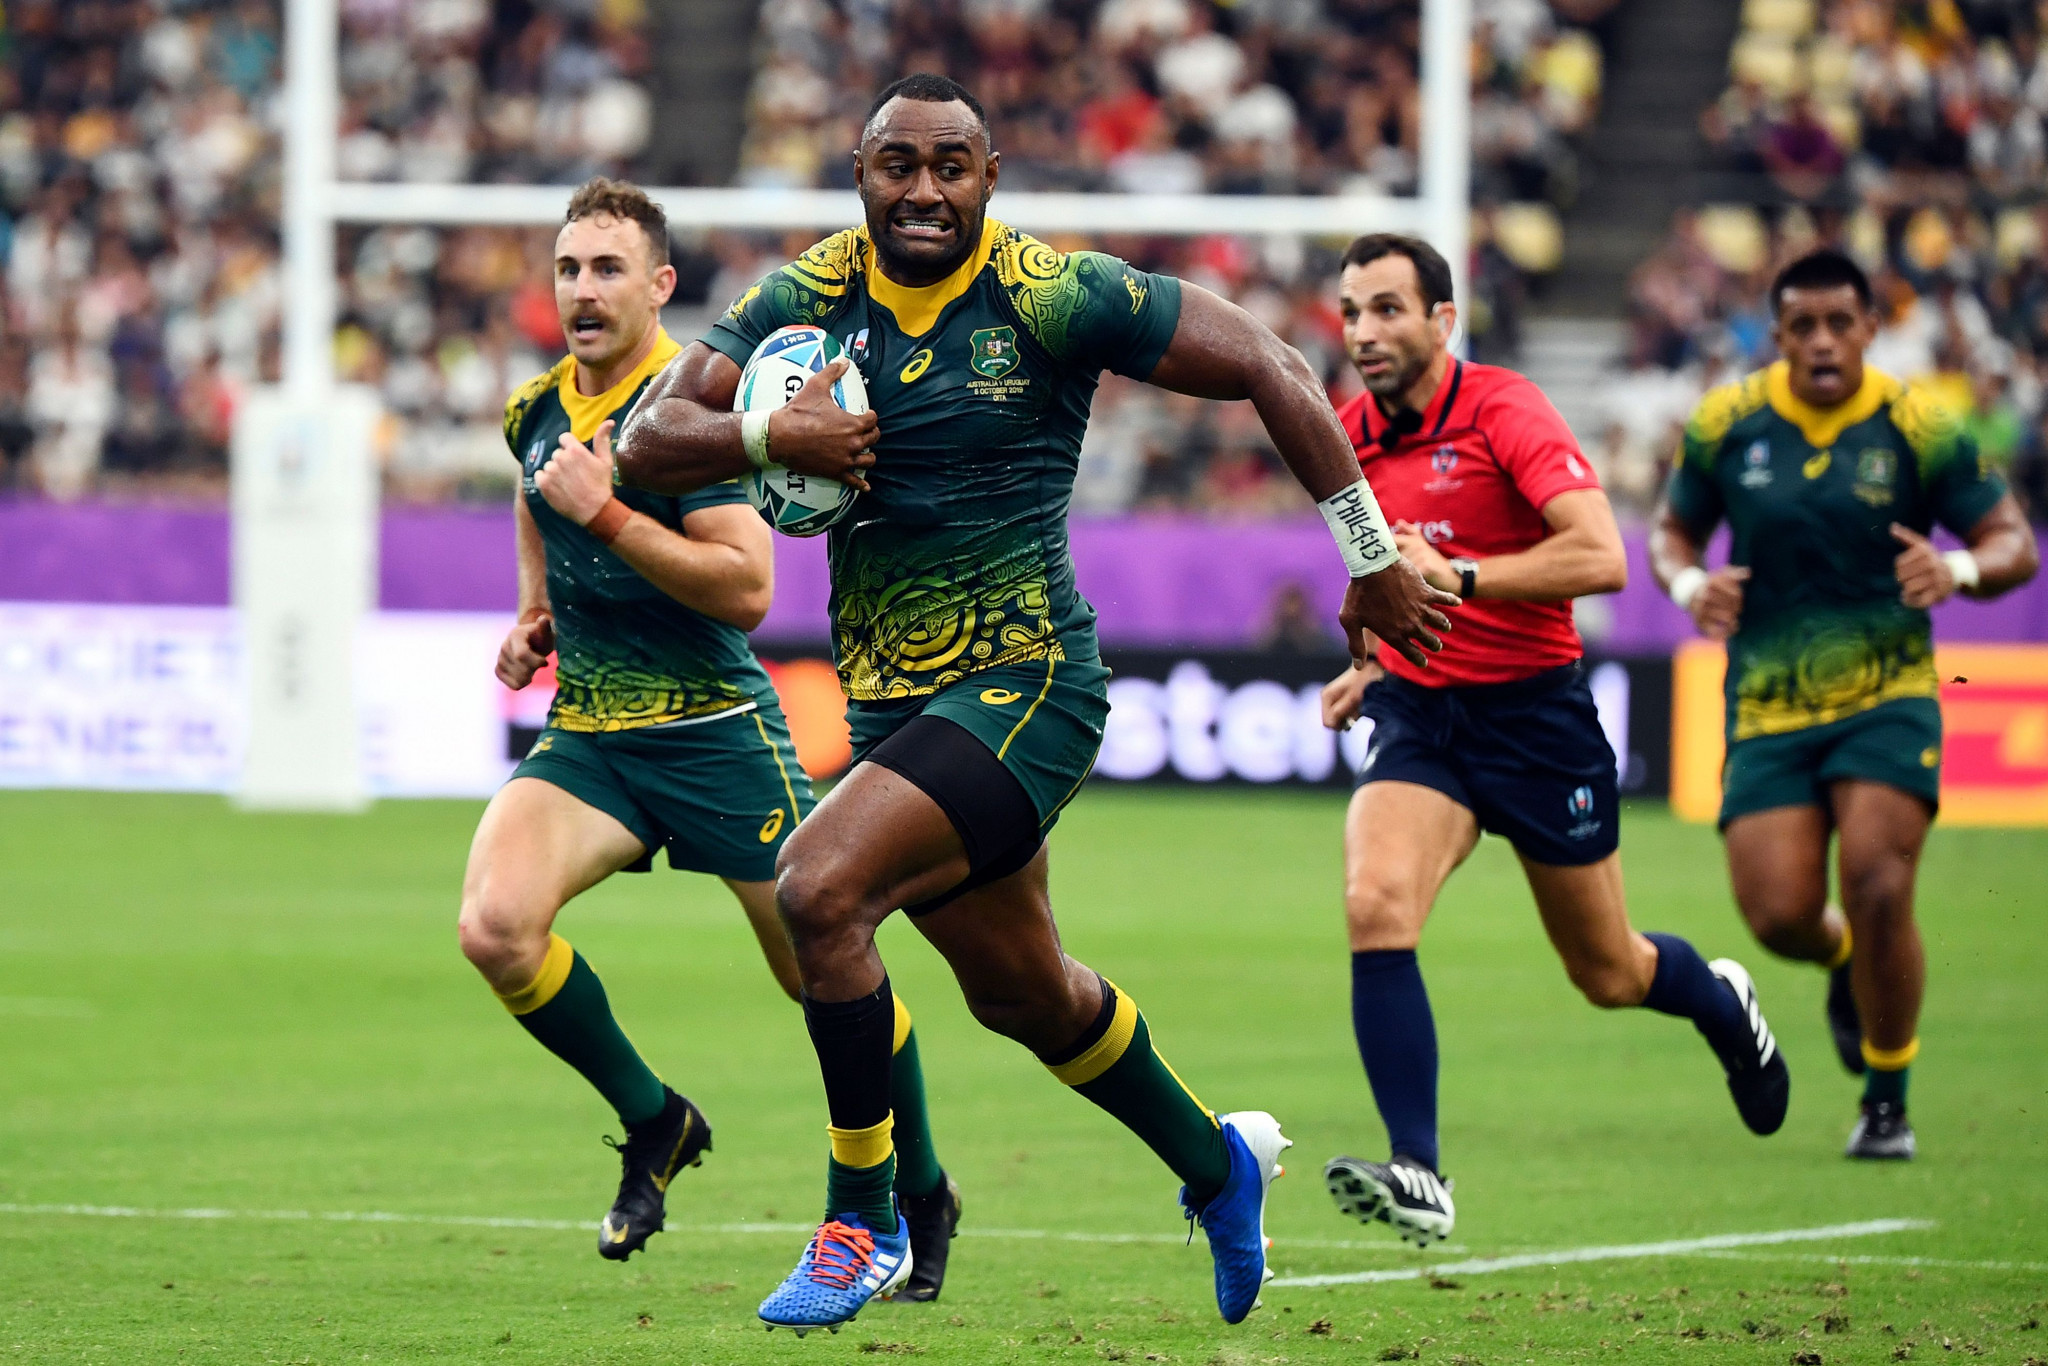 Australia's Tevita Kuridrani is an undoubted match-winner ©Getty Images